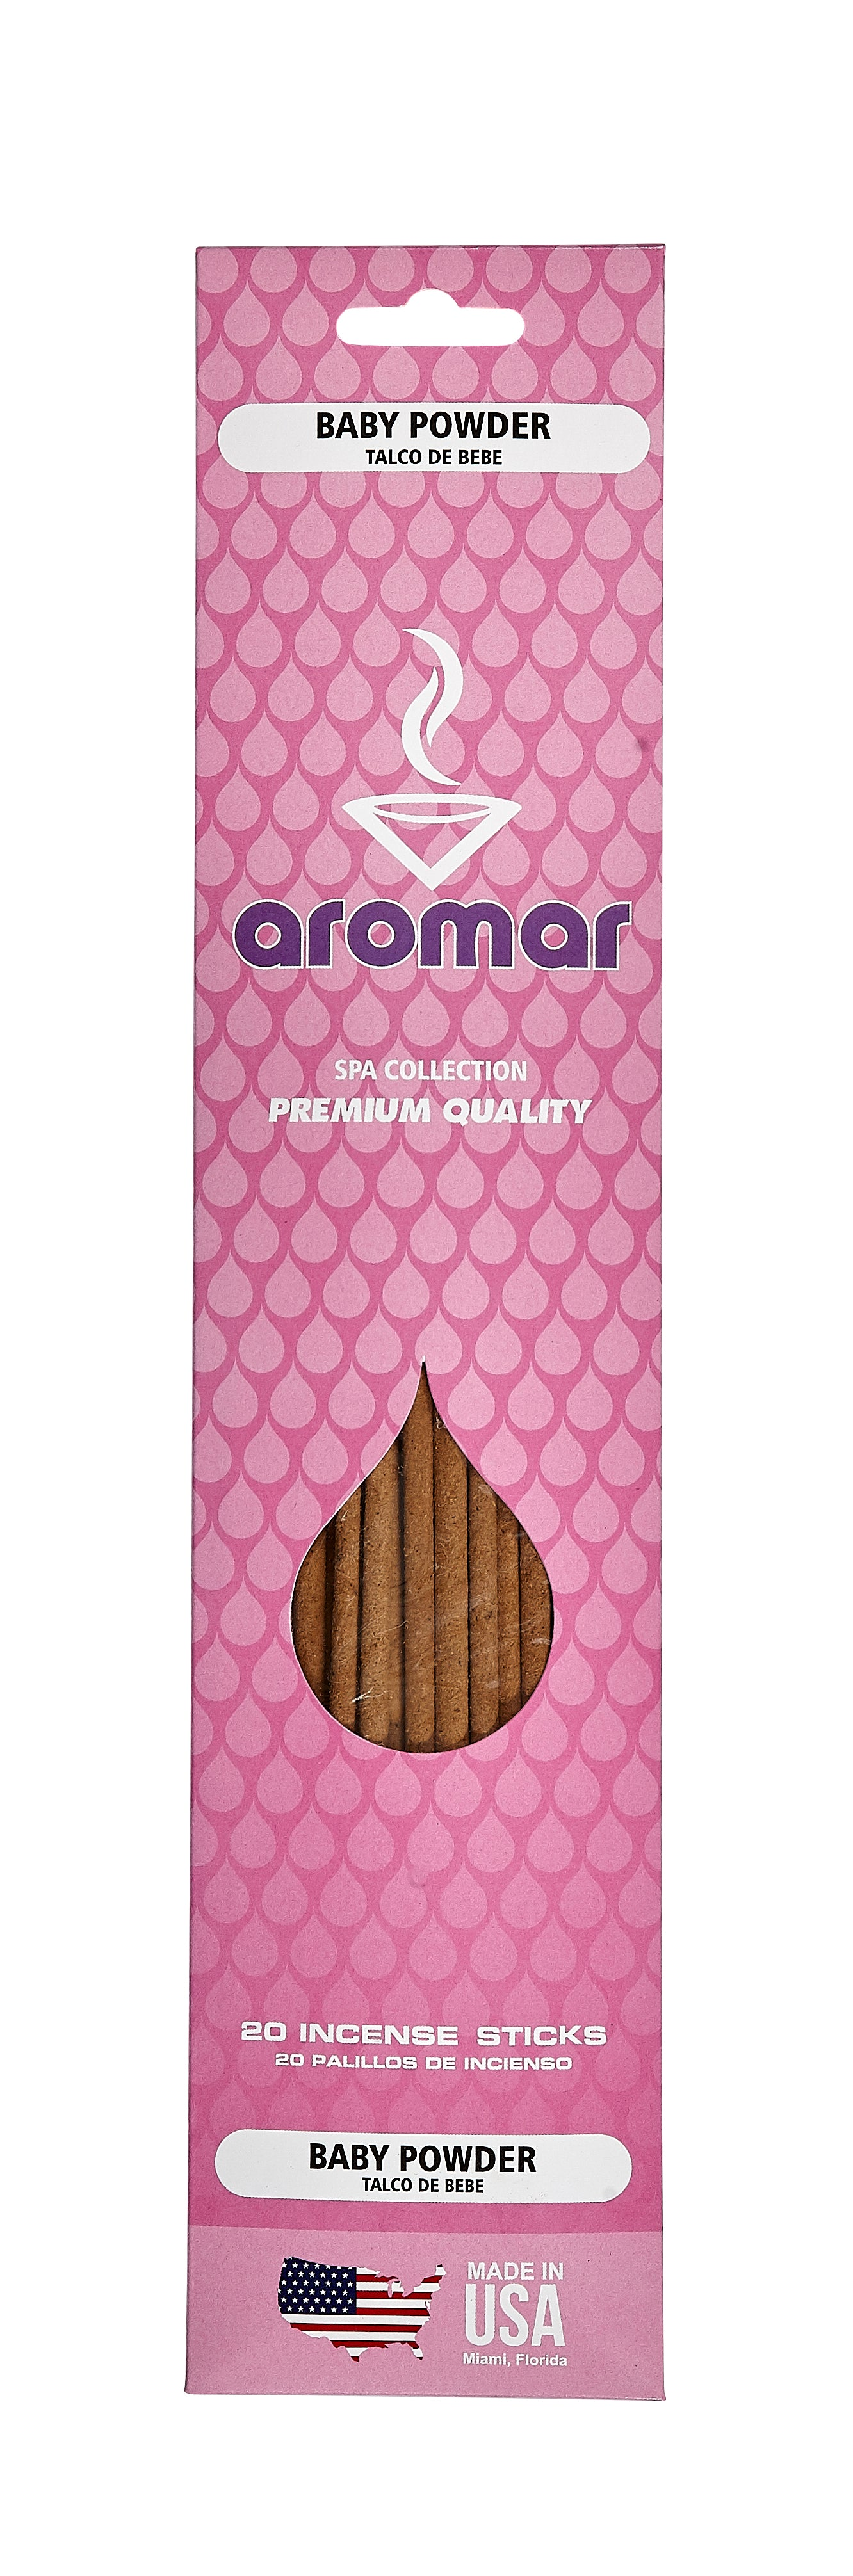 Baby Powder Premium Hand Dipped Pre-Packed Incense